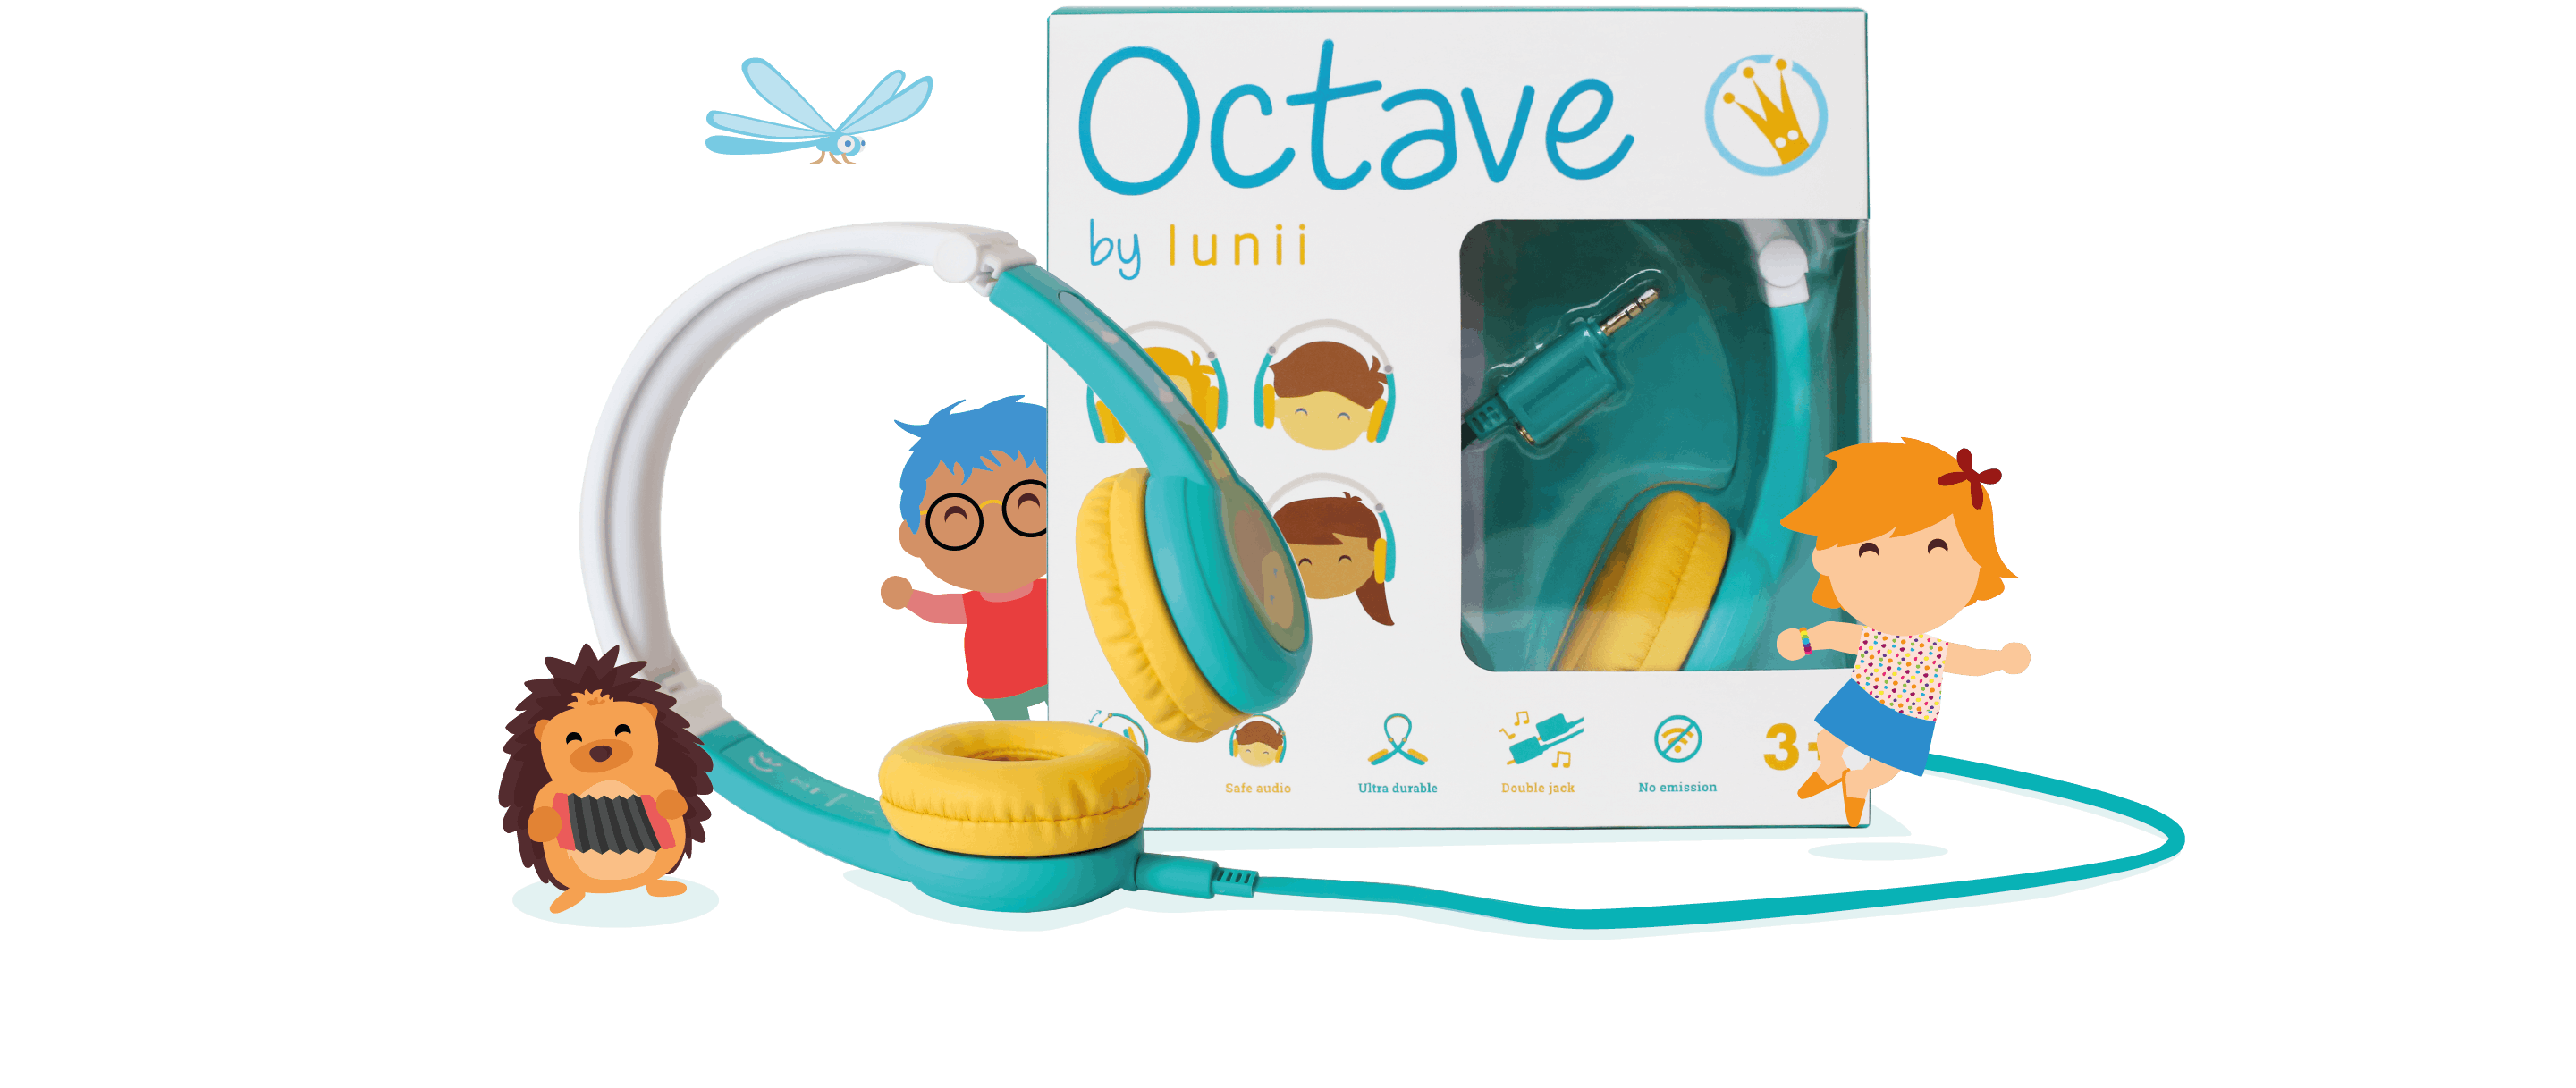 Octave, Lunii headphones, is ideal to create an immersive experience at home or on the go! Great also to share unique audio stories with friends and family.